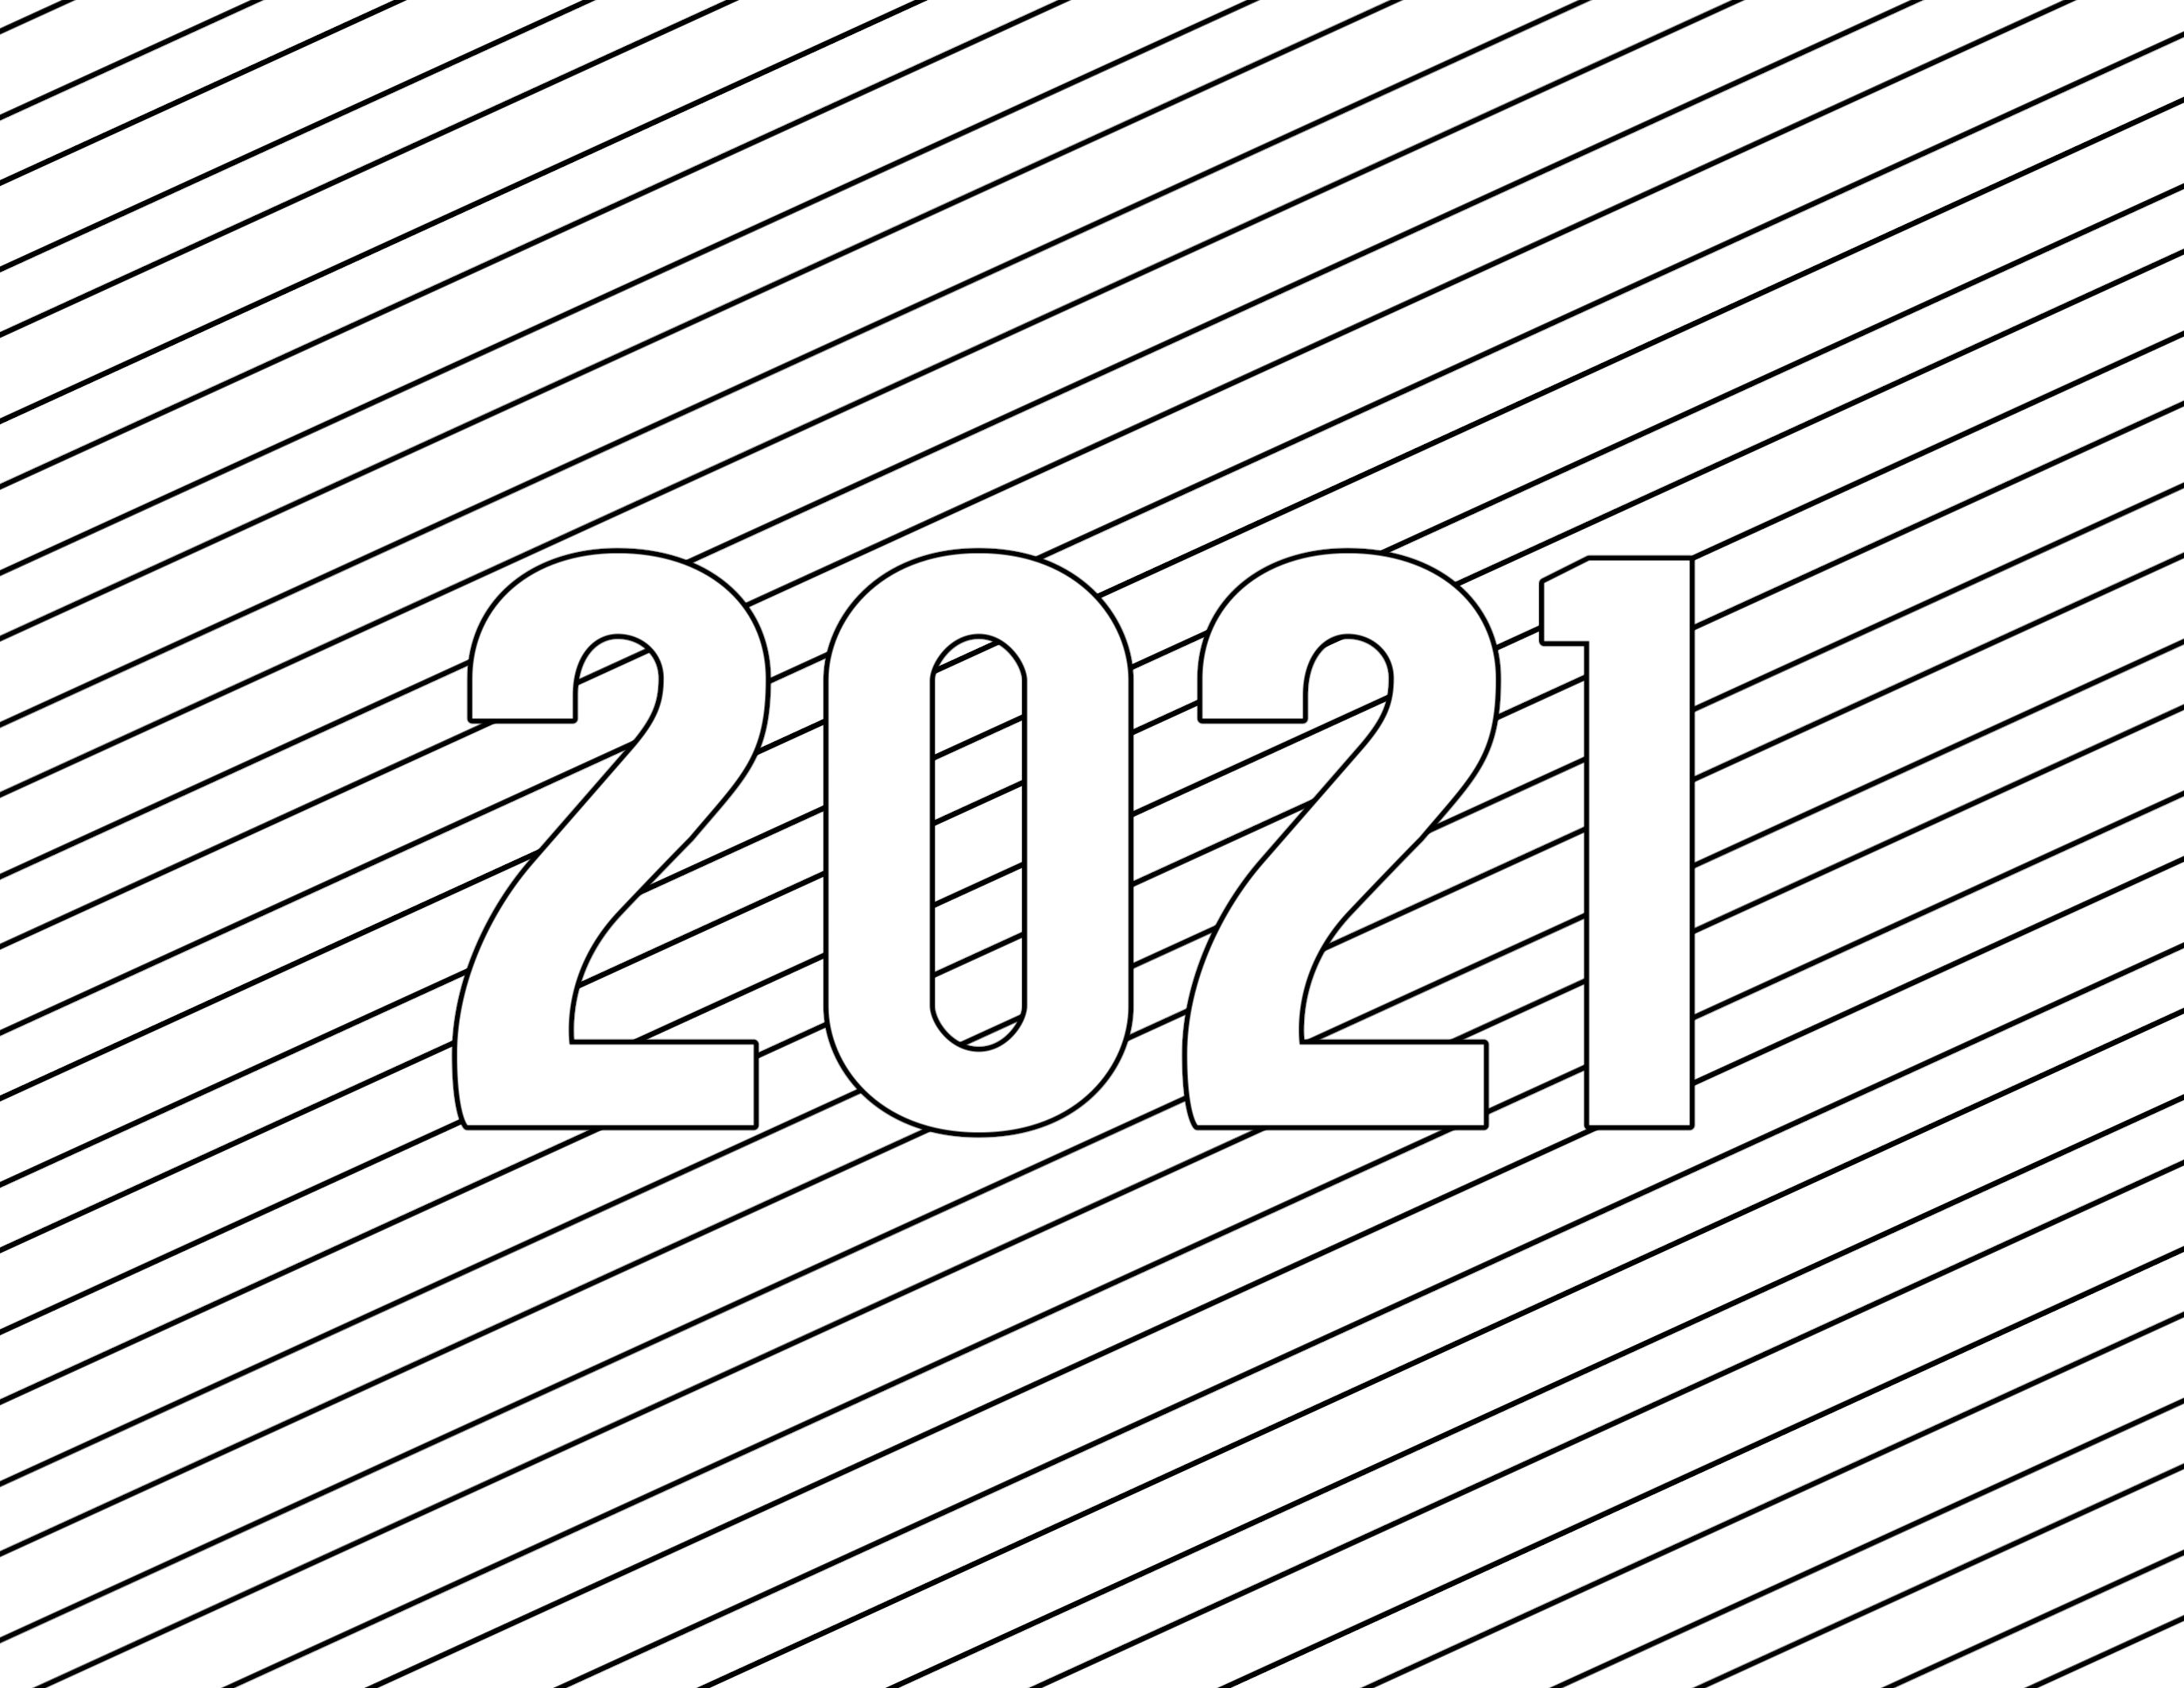 Coloring Pages 2021 In 2020 New Year Coloring Pages Printable Coloring Pages Coloring Pages For Kids